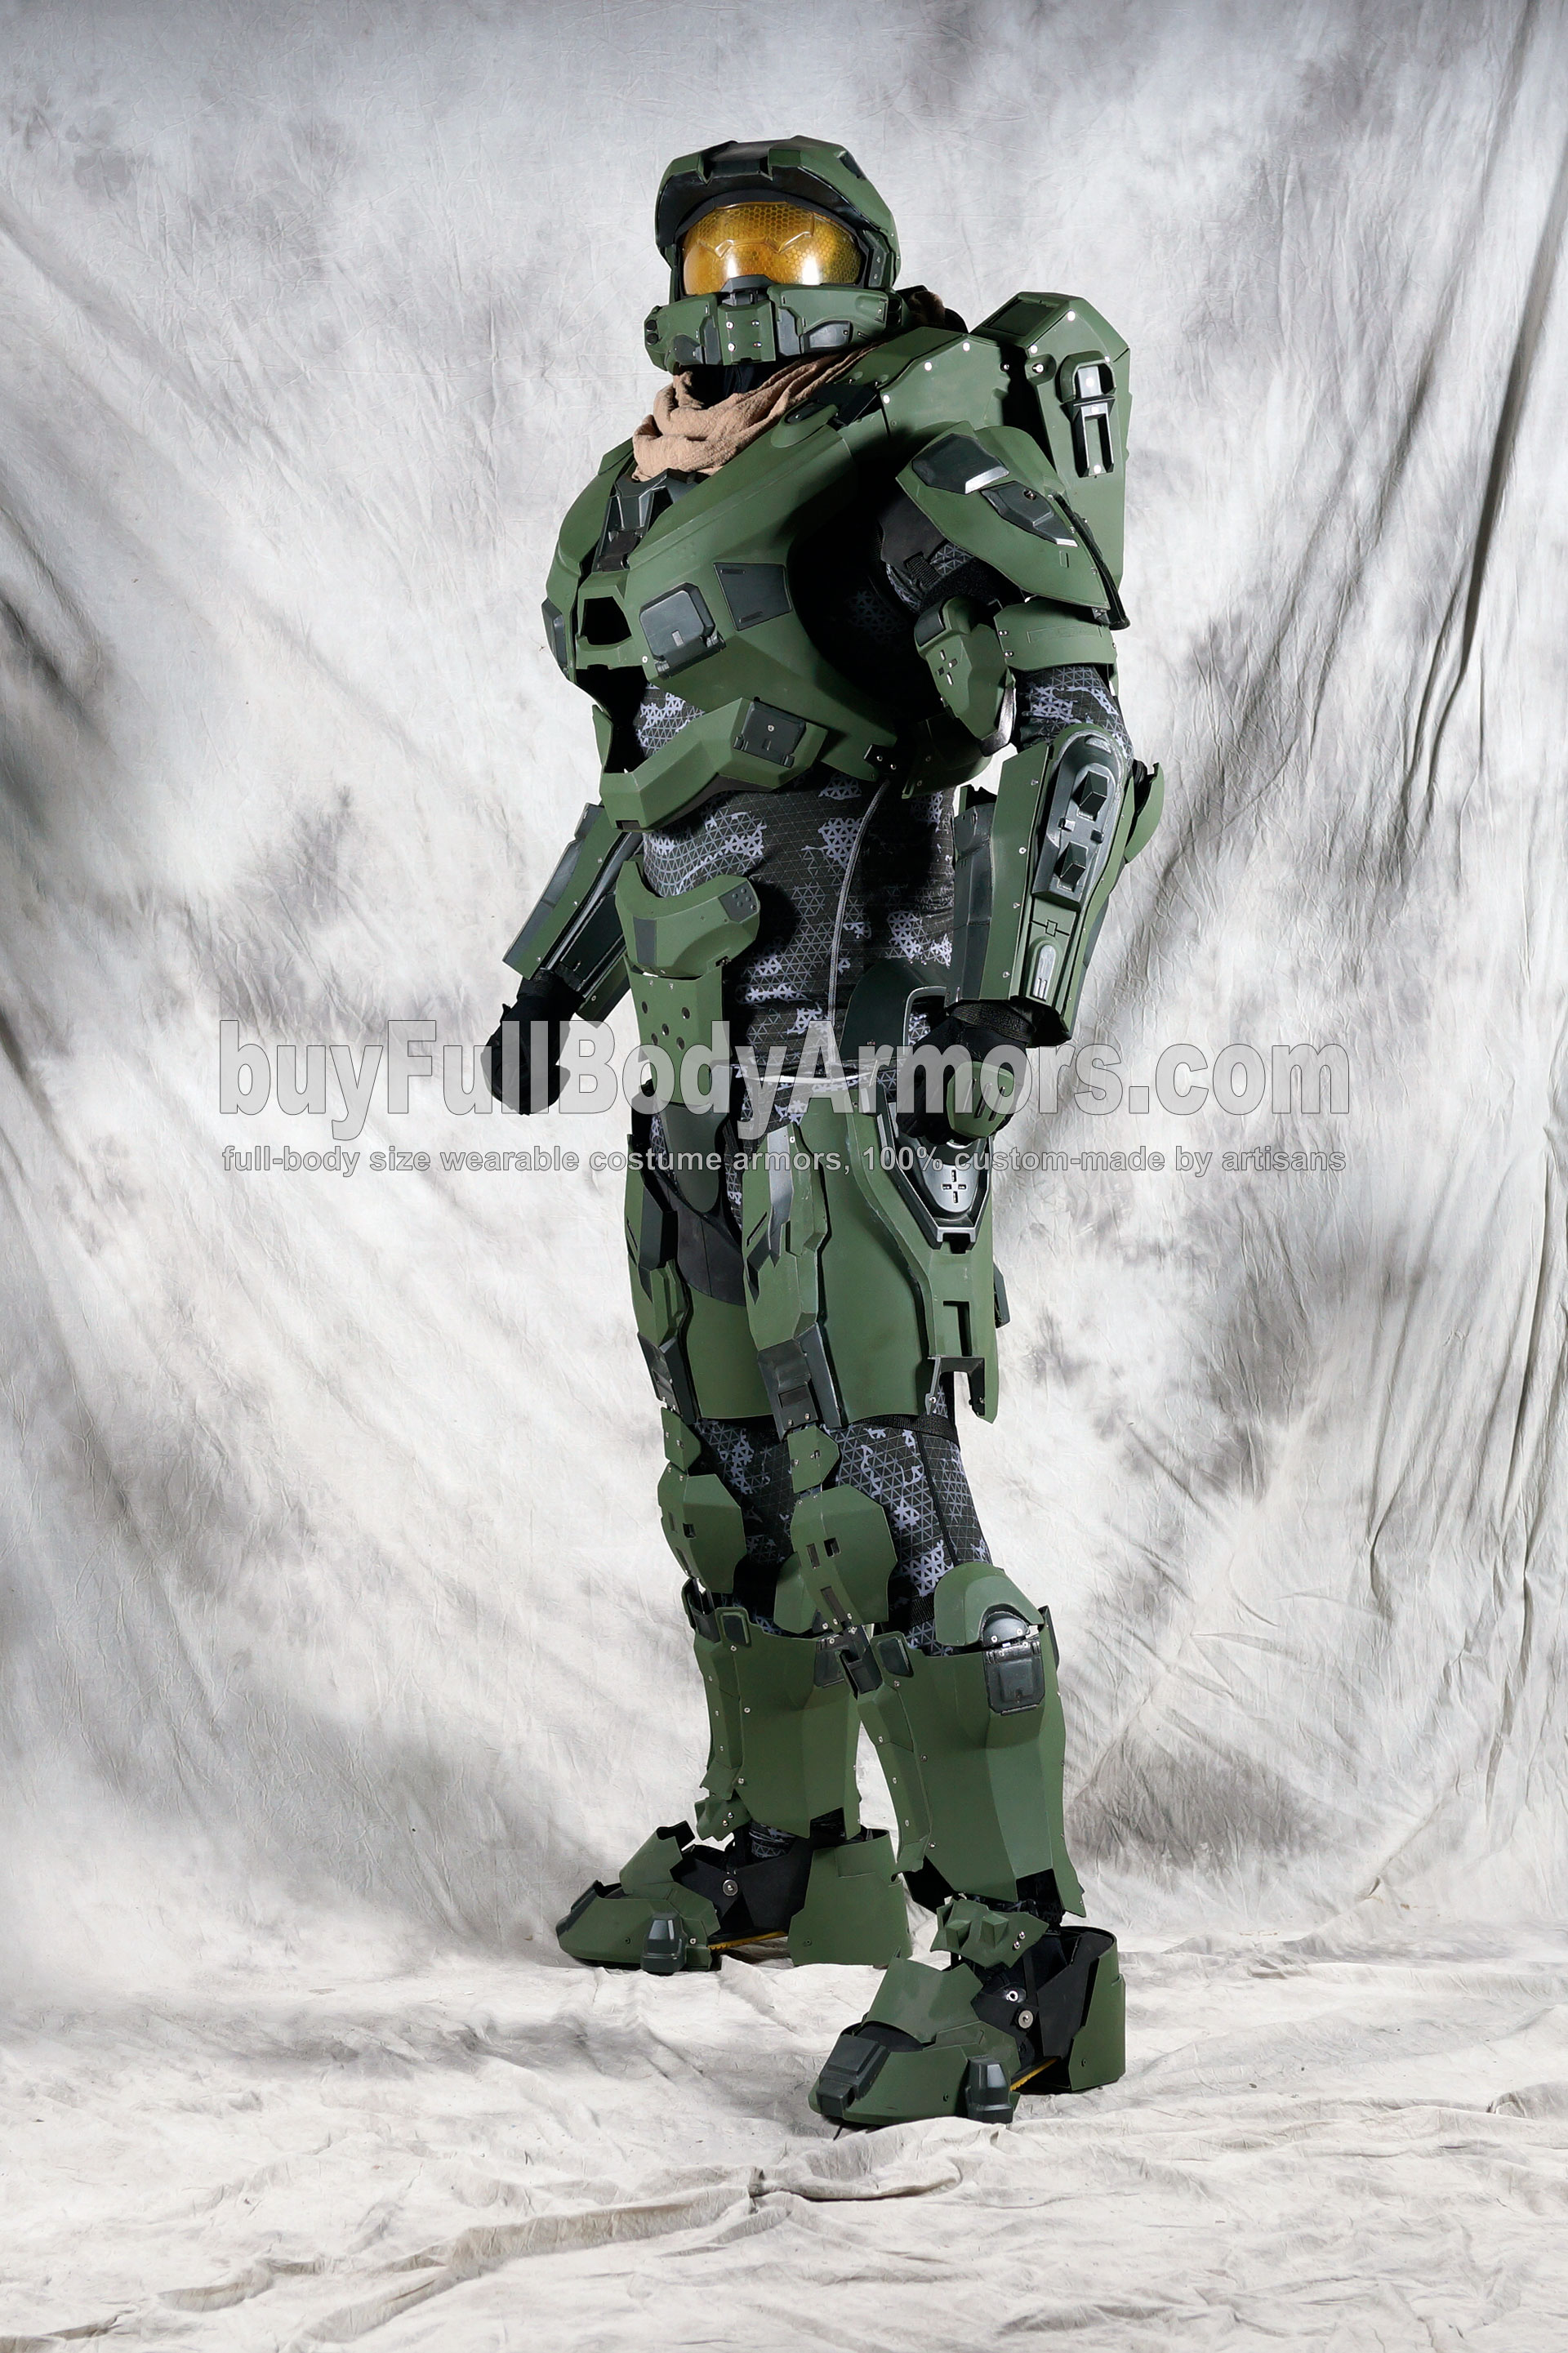 Halo 5 Master Chief Armor Suit Costume 1